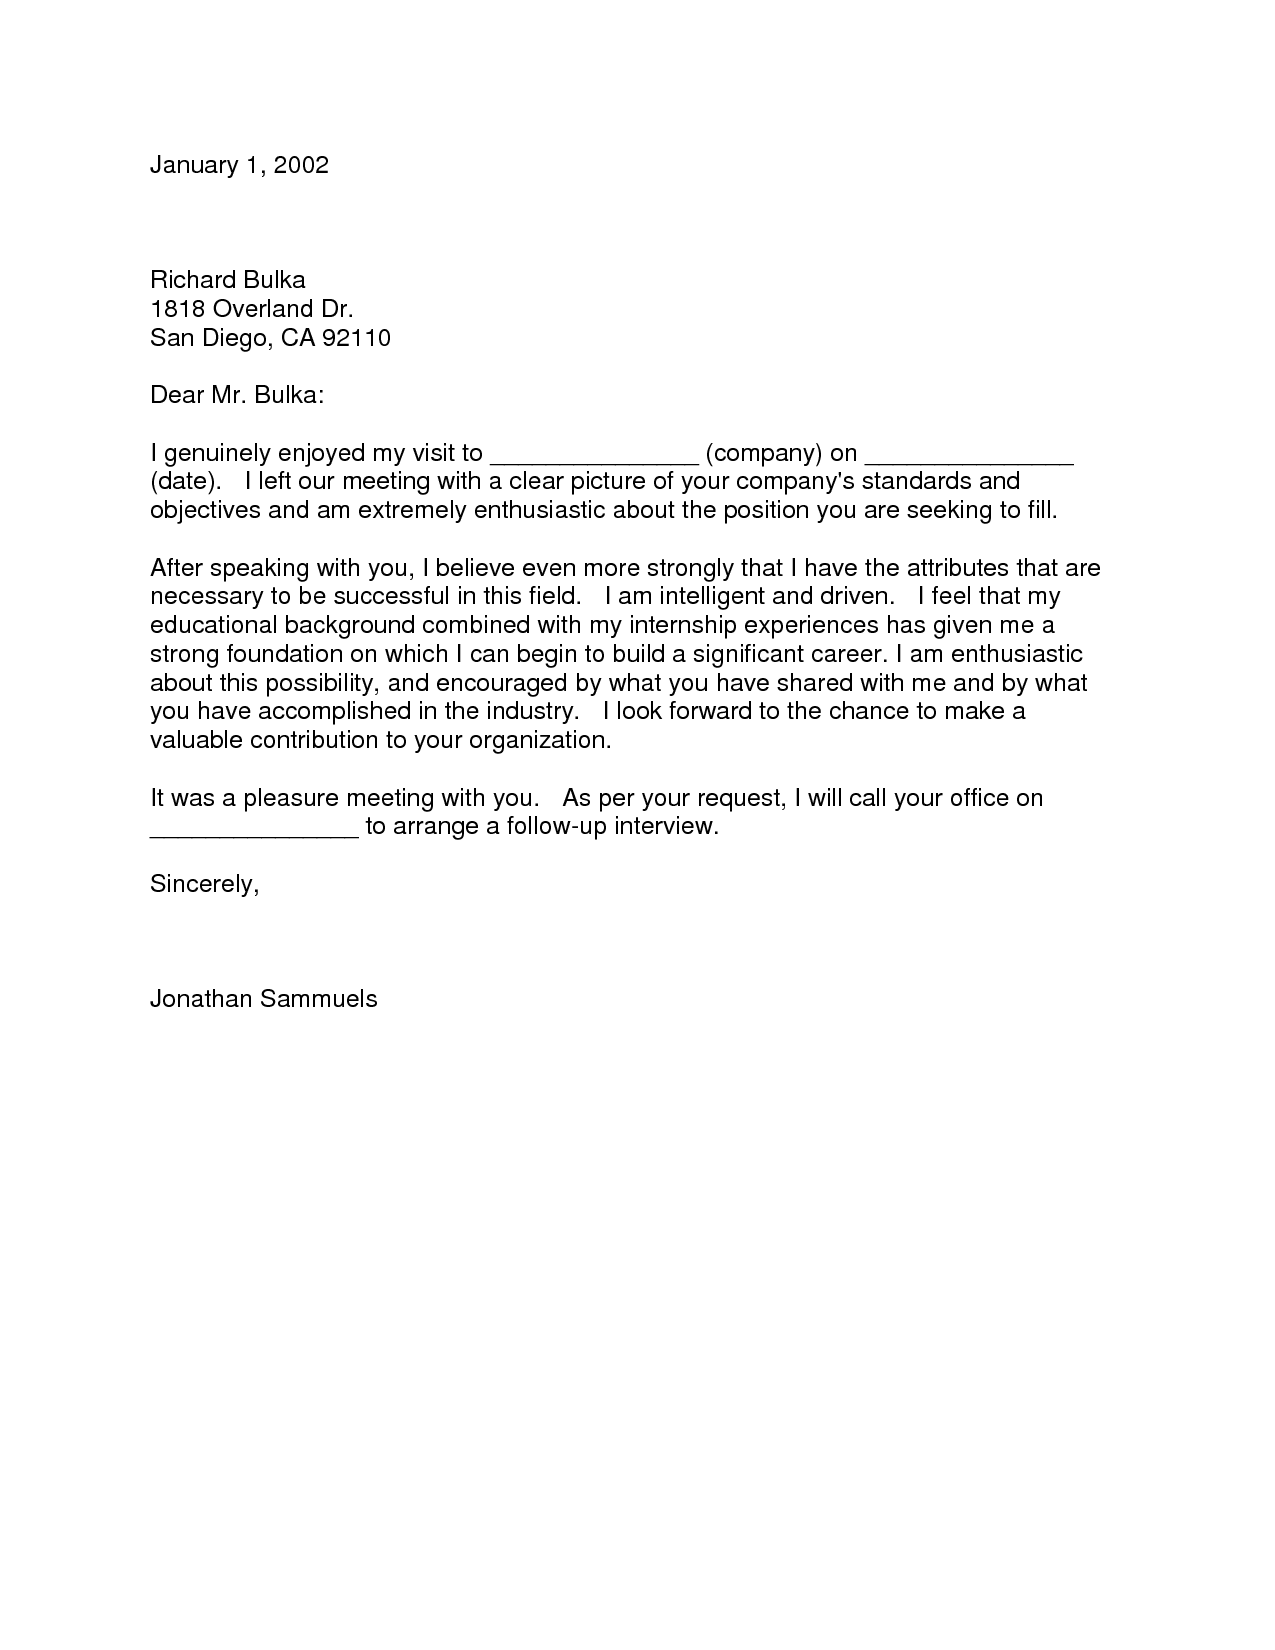 Follow Up Letter After Submitting Resume